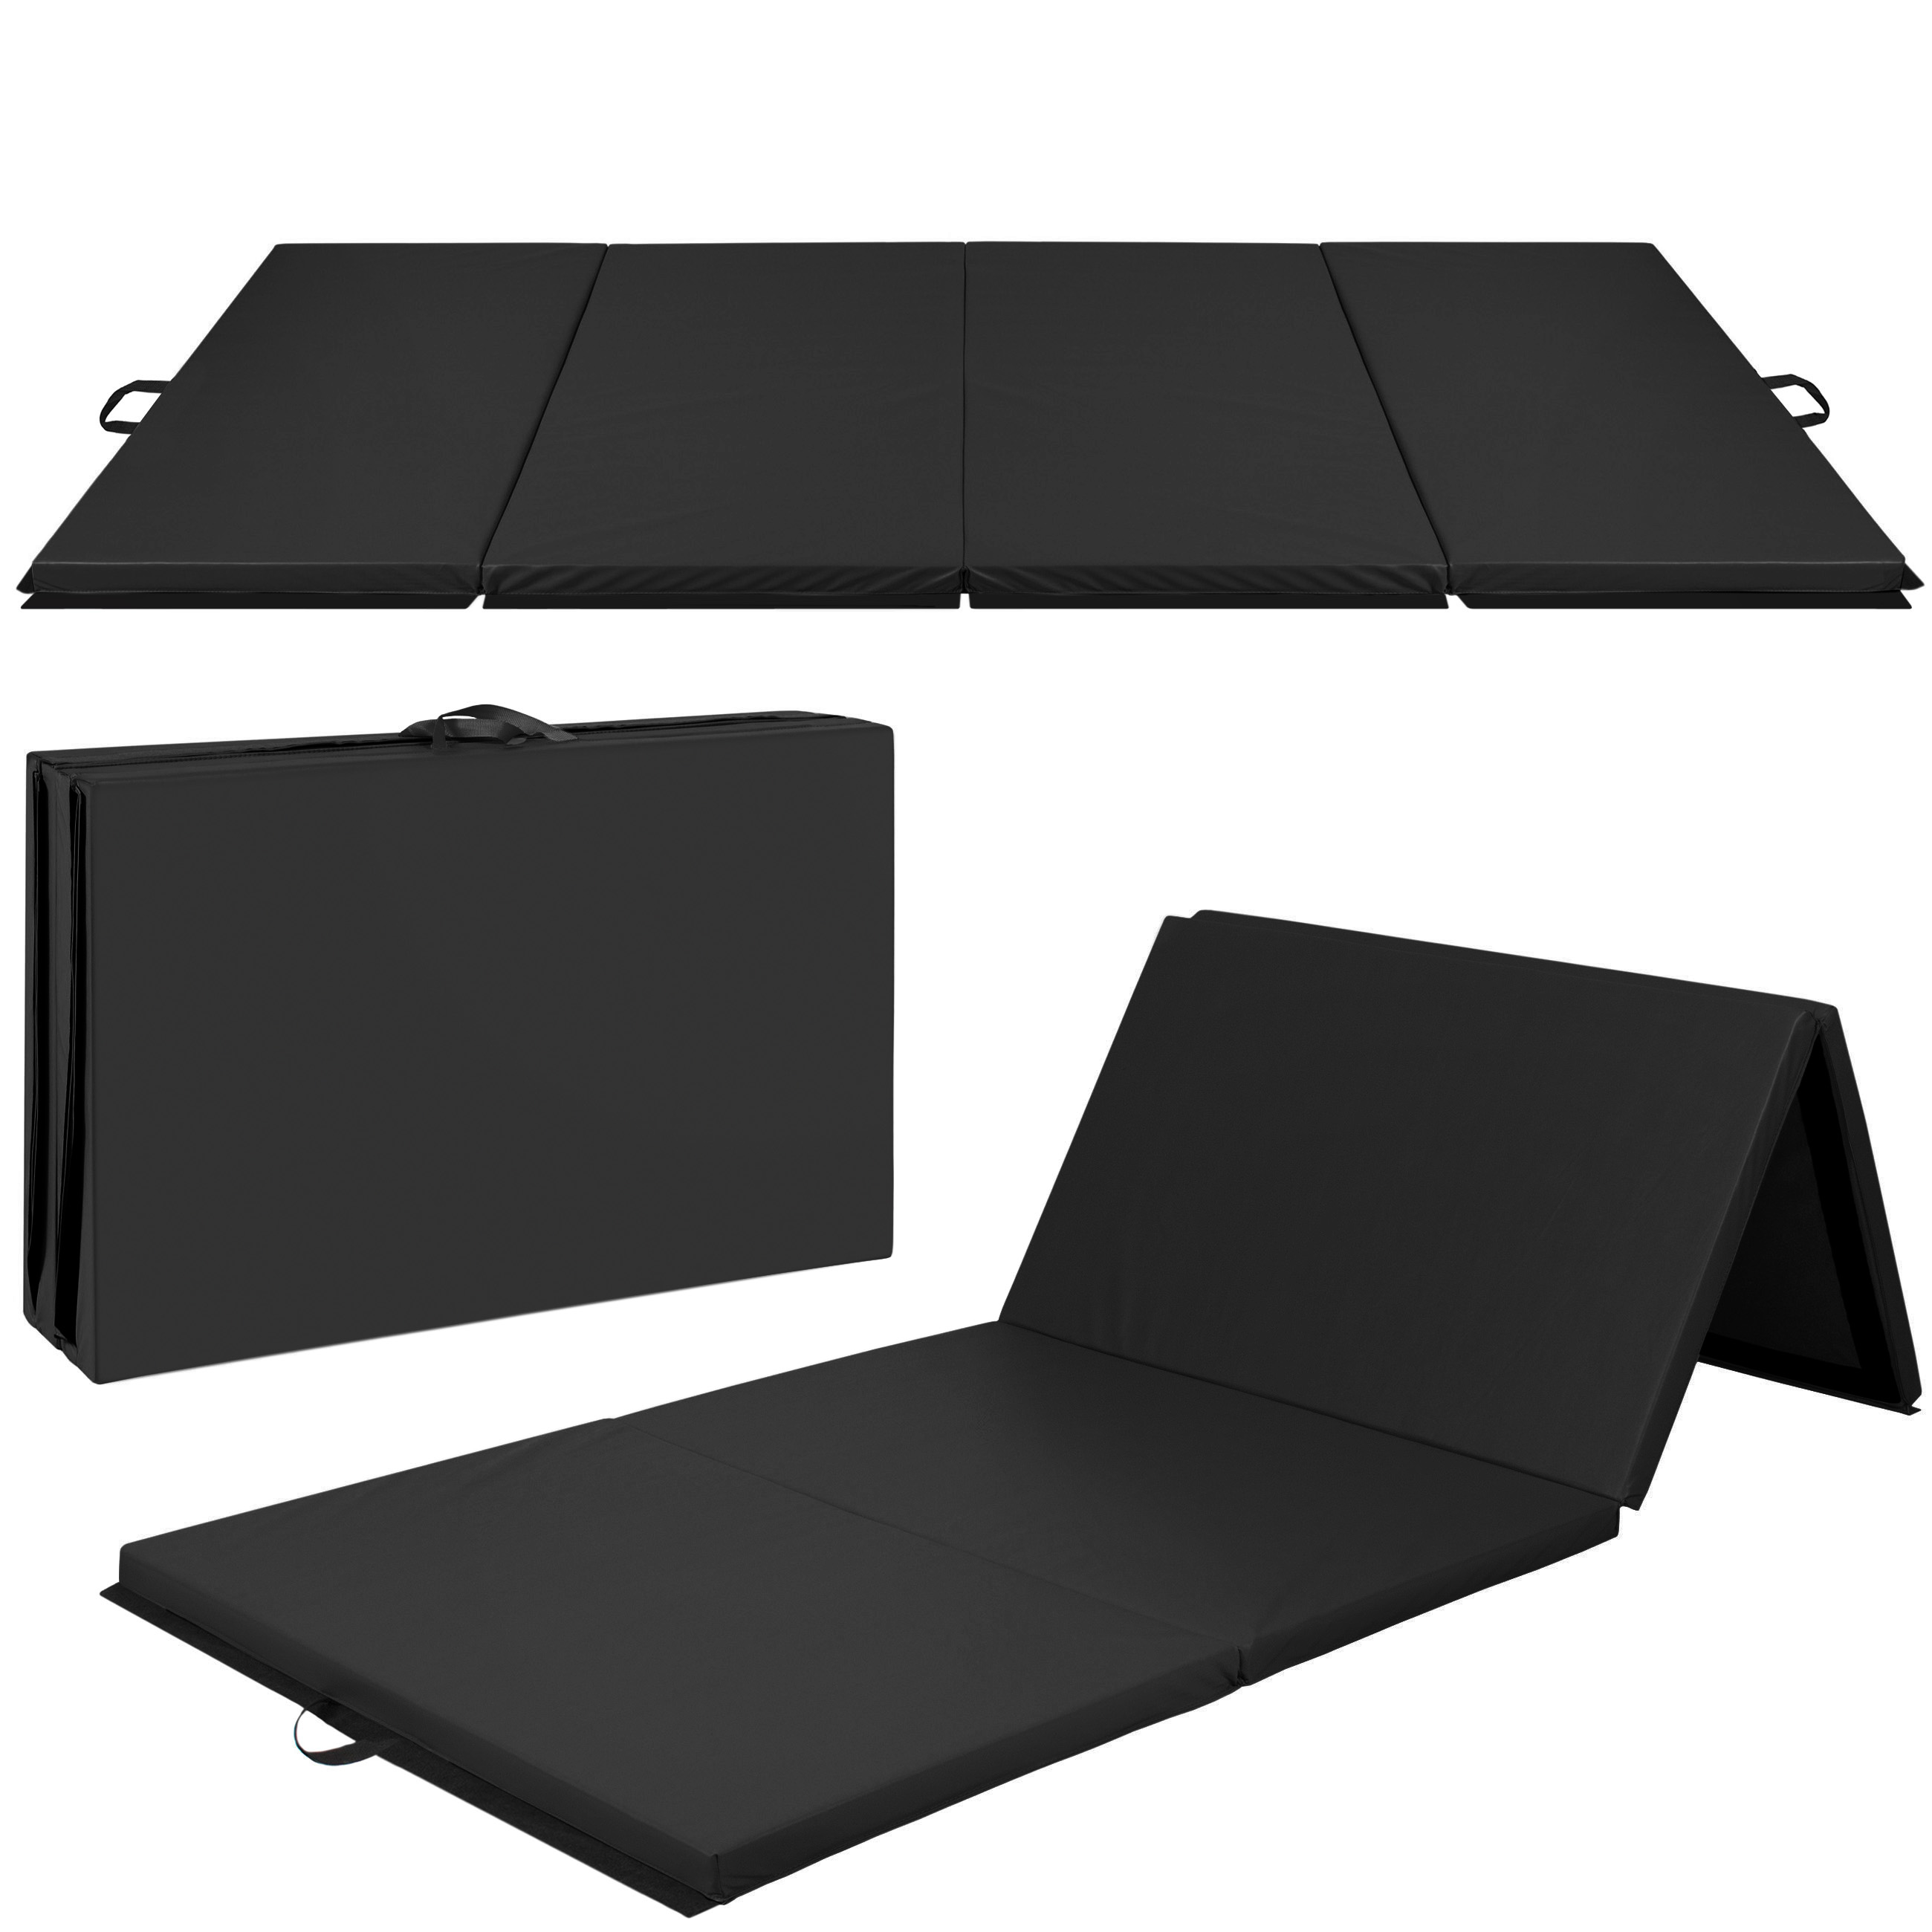 Best Choice Products Folding 10' Exercise Gym Mat For Gymnastics, Aerobics, Yoga, Martial Arts - Black